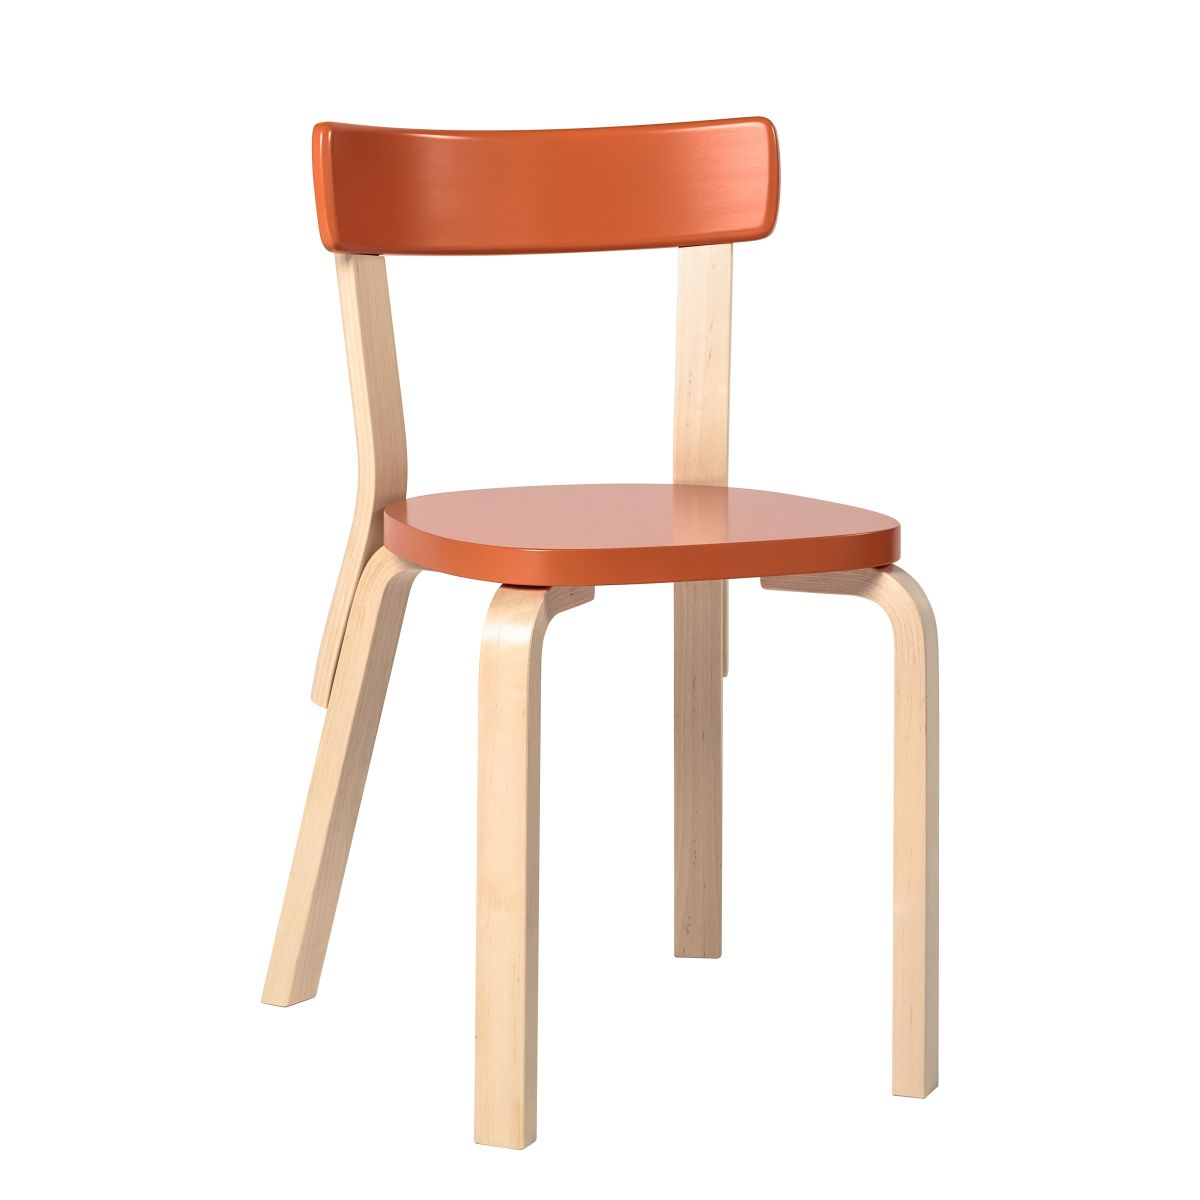 Chair 69 orange lacquer seat